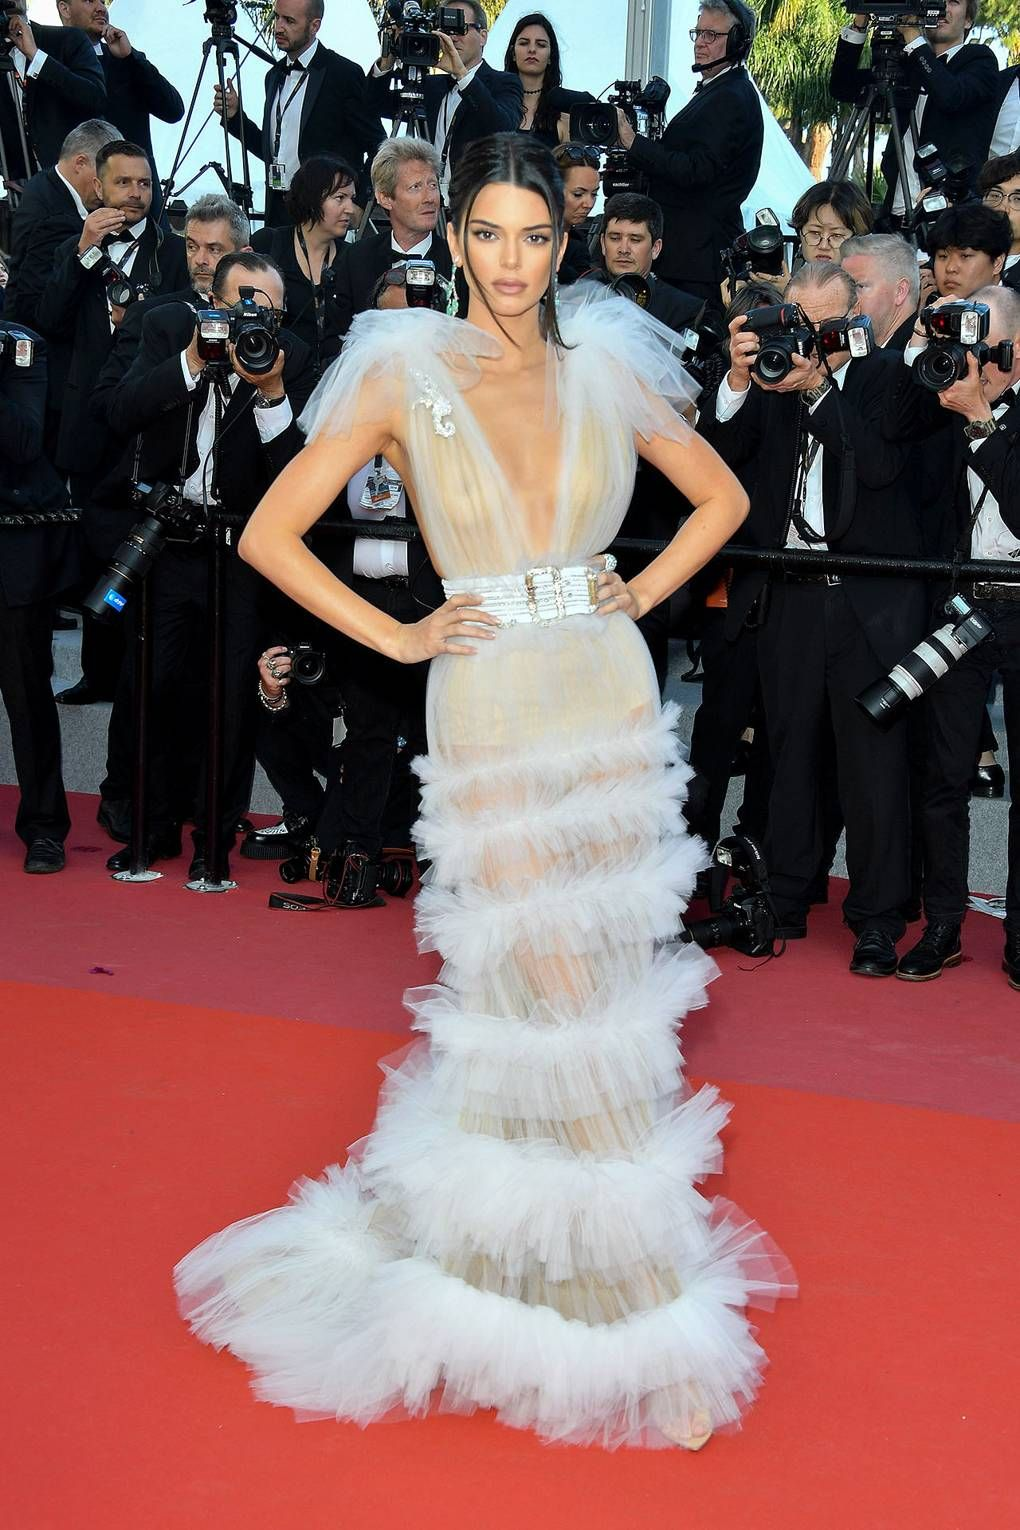 The dreamiest dresses on the red carpet at Cannes Film Festival